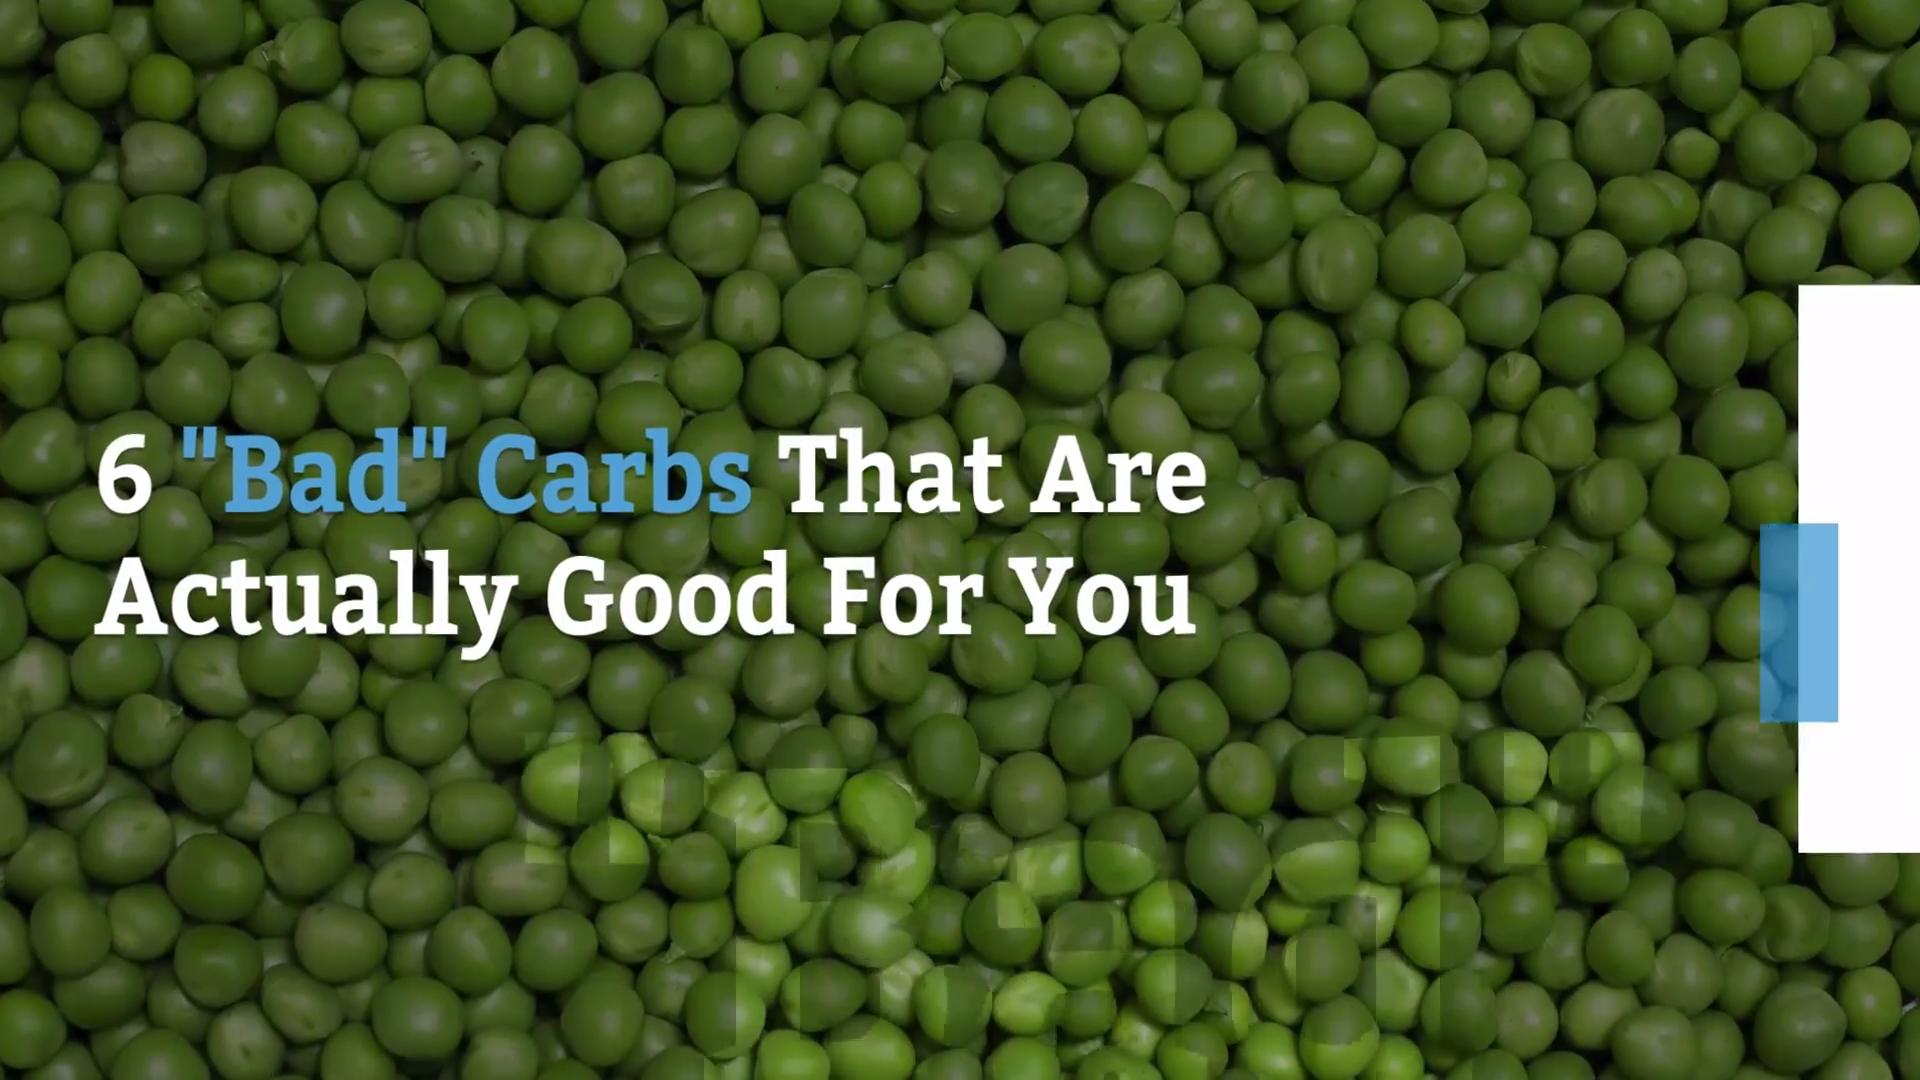 5 Superfood Carbs You're Probably Missing on the Keto Diet